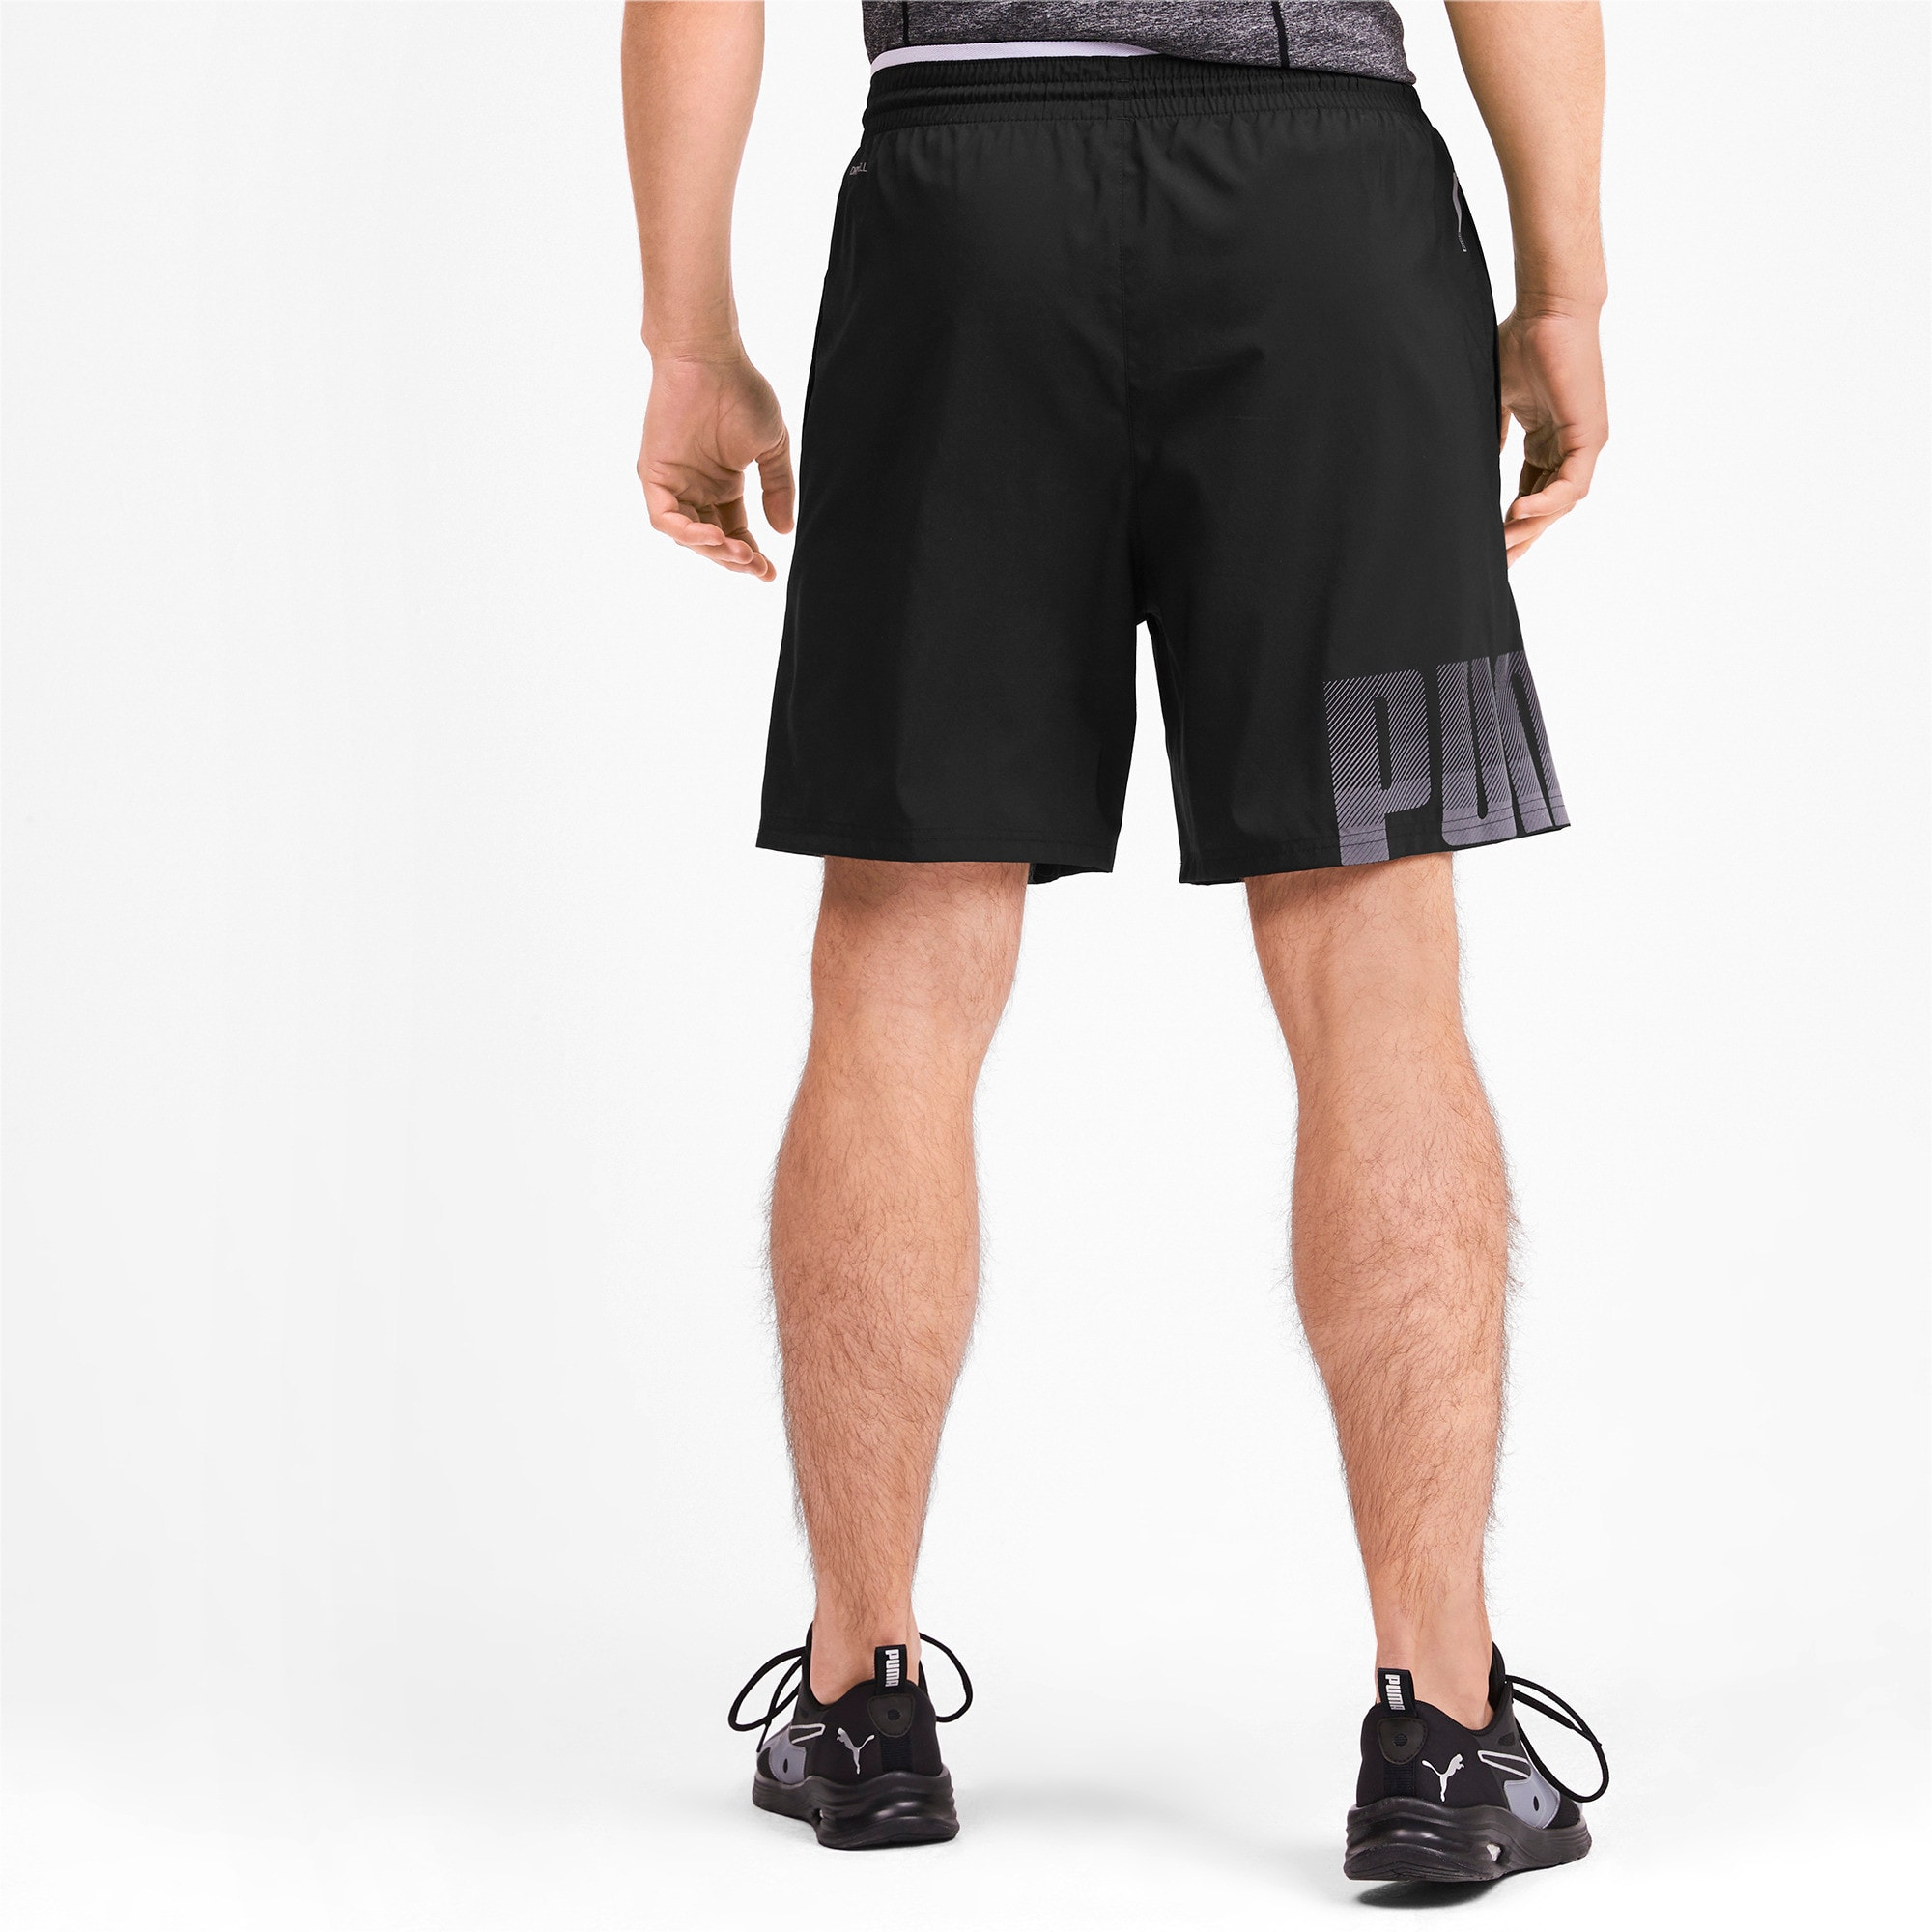 Thumbnail 2 of Collective Woven Men's Training Shorts, Puma Black, medium